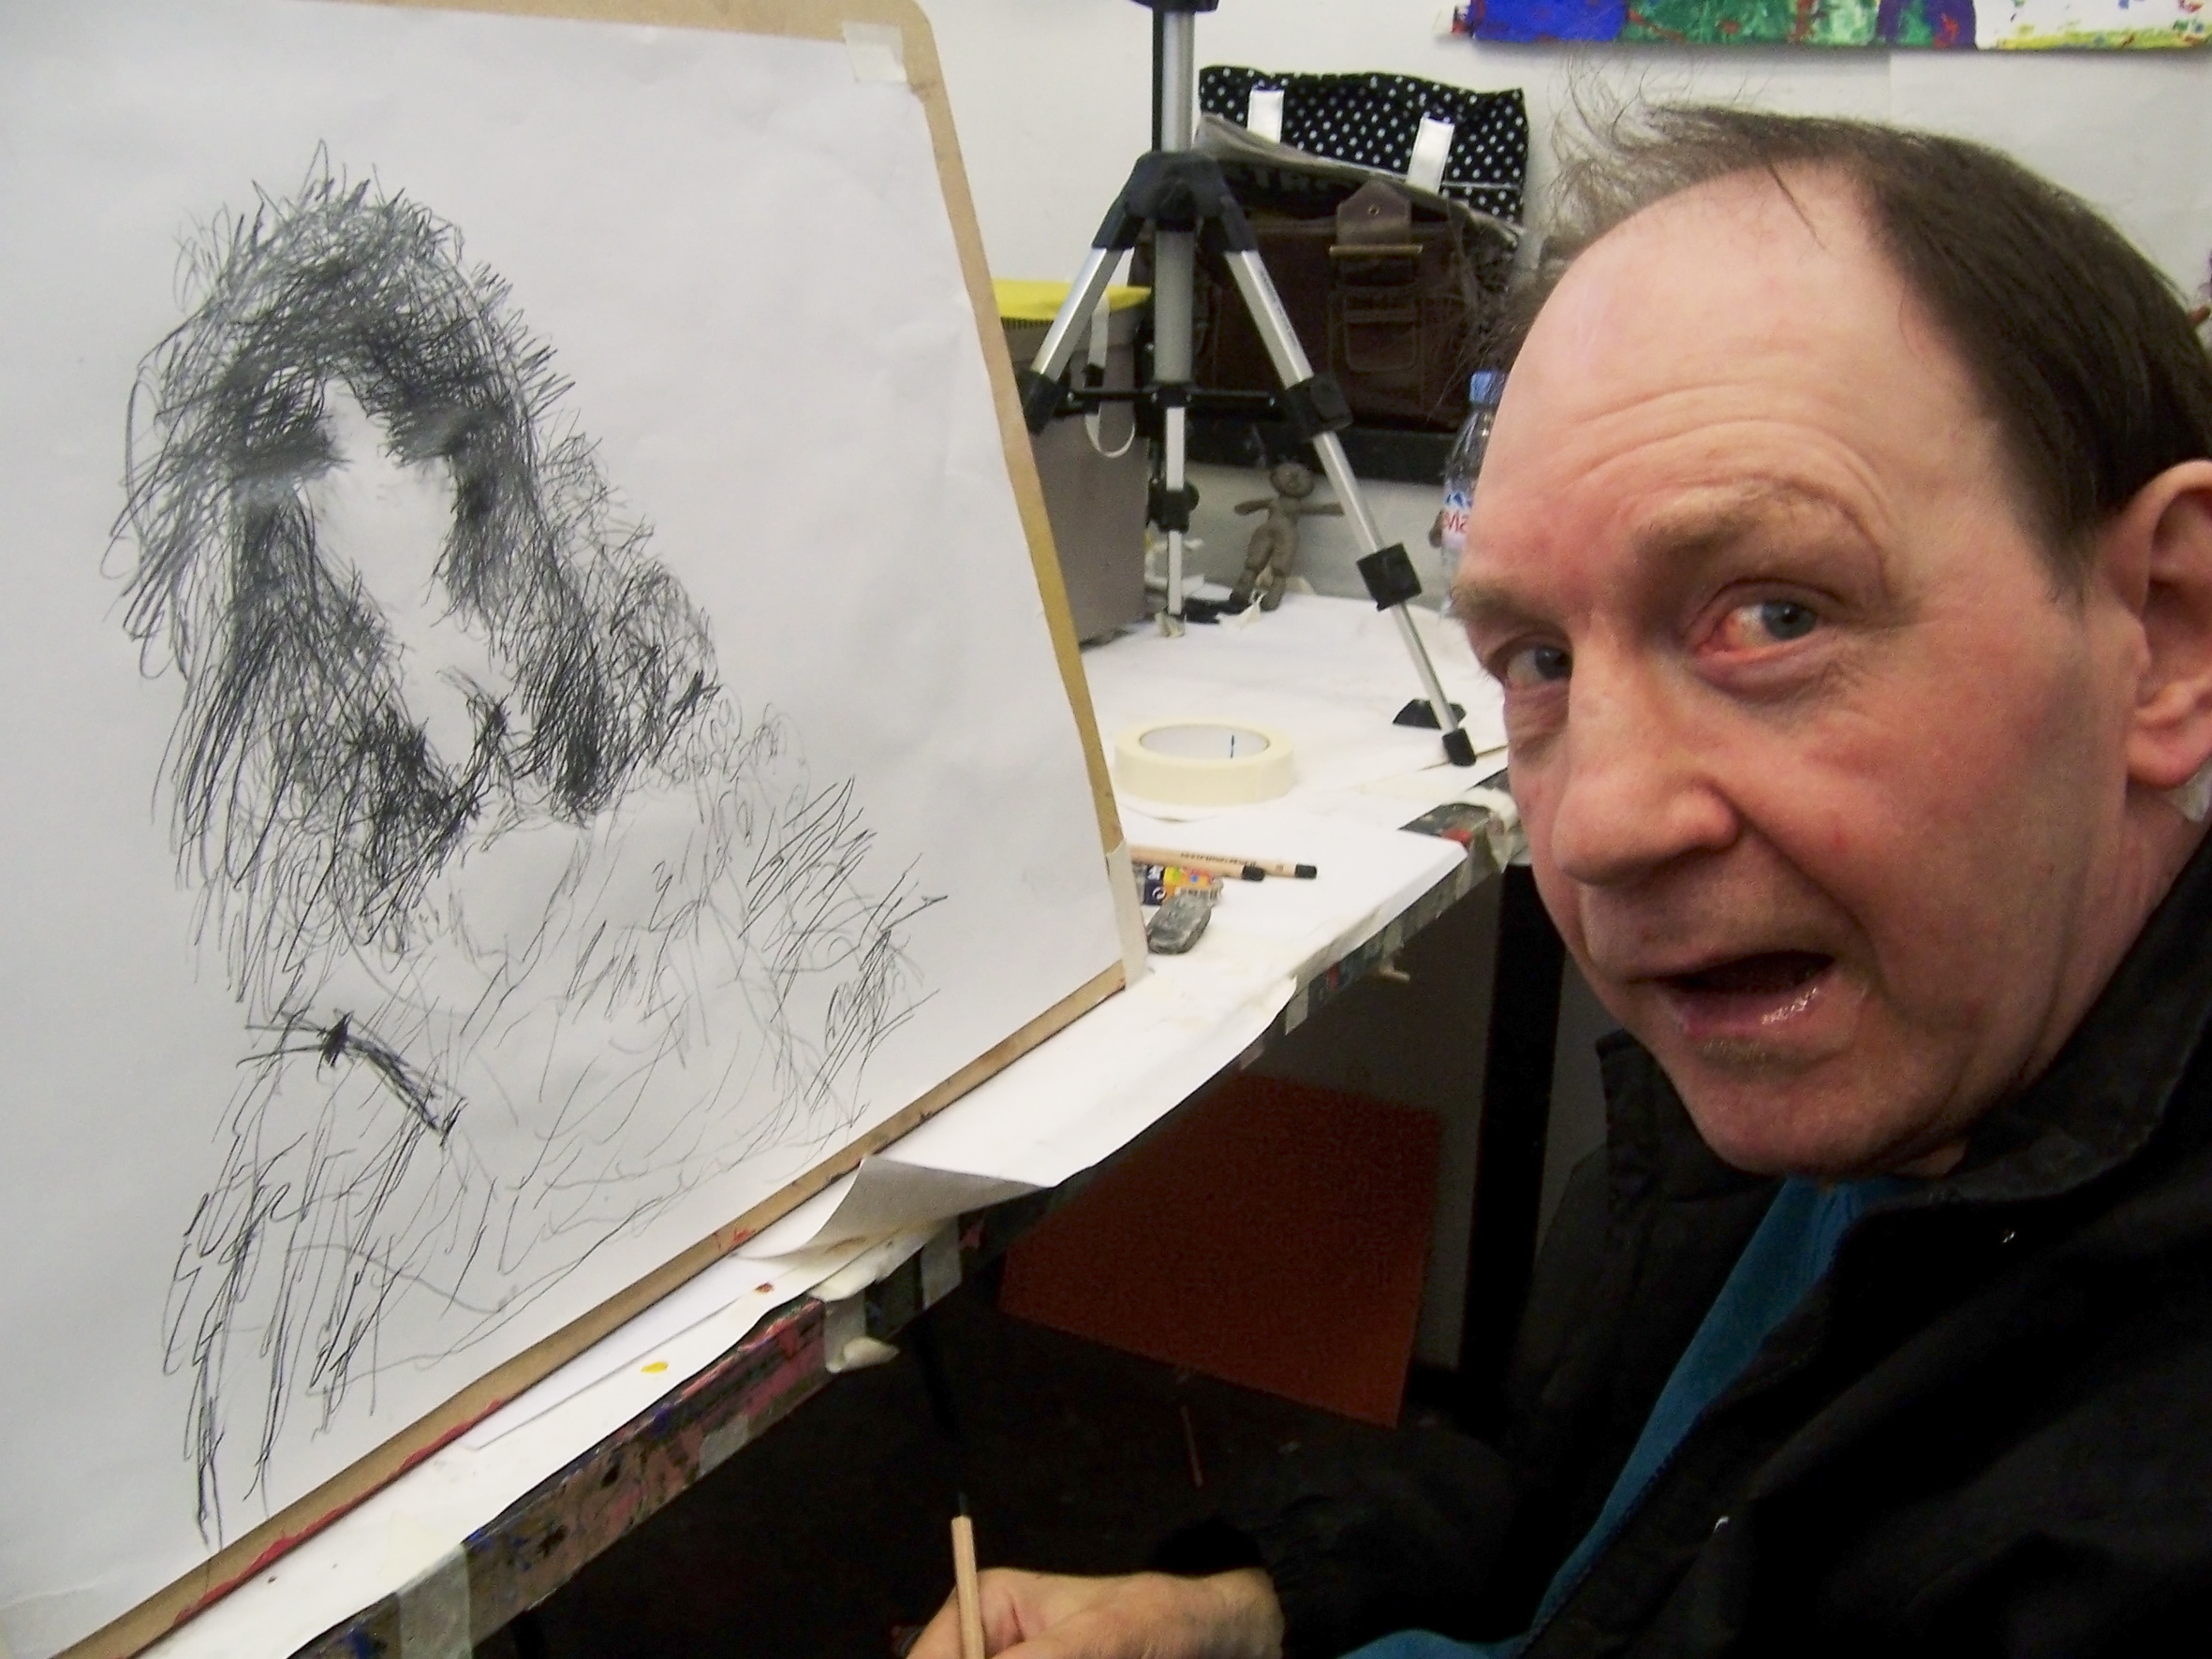 Nigel Kingsbury drawing in studio.